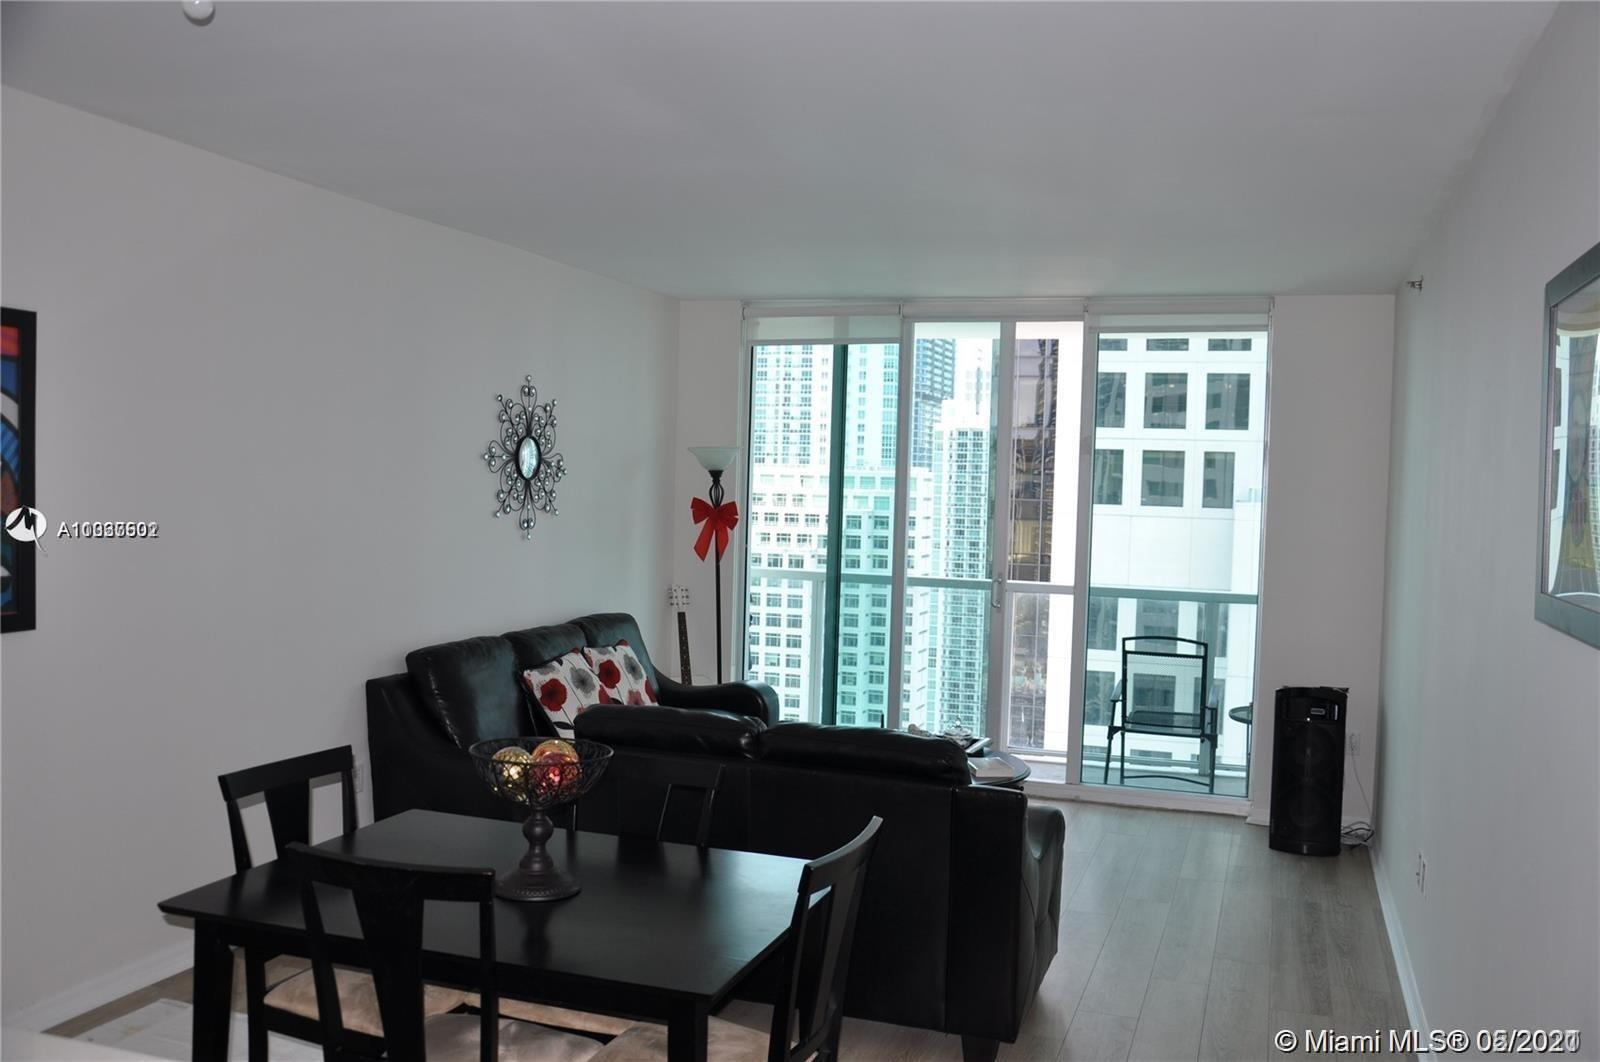 Spectacular bay and city views from this spacious 1 bedroom and 1 bathroom unit located in in exclusive 500 Brickell (East Tower). Enjoy the unique amenities: 3 spectacular pools including a lab pool and 42nd floor with panoramic view pool. State of the art fitness center, wine cellar room, sport bar room, his/hers hot jacuzzi, unique theater, walking distance of Brickell City Centre, Mary Brickell Village, the financial district, restaurants & entertainment. Quick access to main roads and expressways. Basic cable & internet included. Unit rented until Nov 30, 2021 at $2,000 / month (Great Tenant)